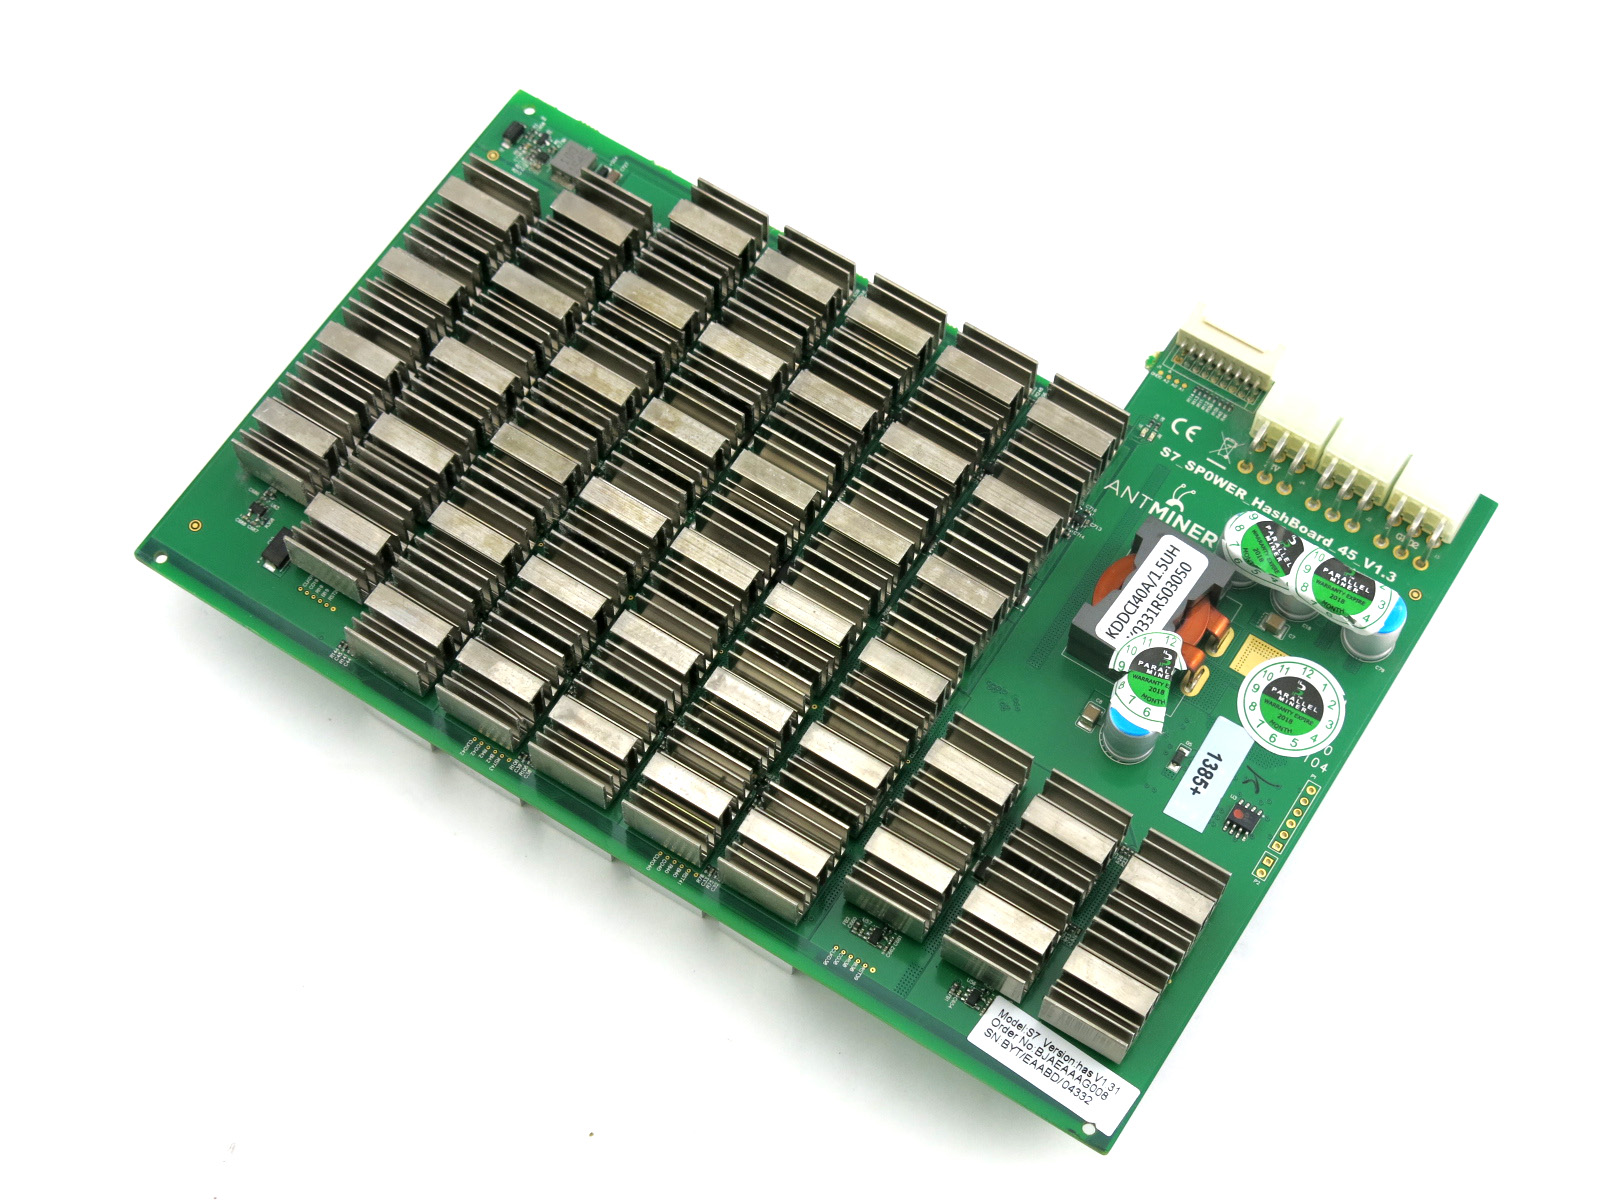 Bitmain Antminer S7 Replacement ASIC Hashing Hash Board 45 Chip Ver 1 31 or  1 32 - Tested at 600 MHz 1 2 TH/s 1200 GH/s